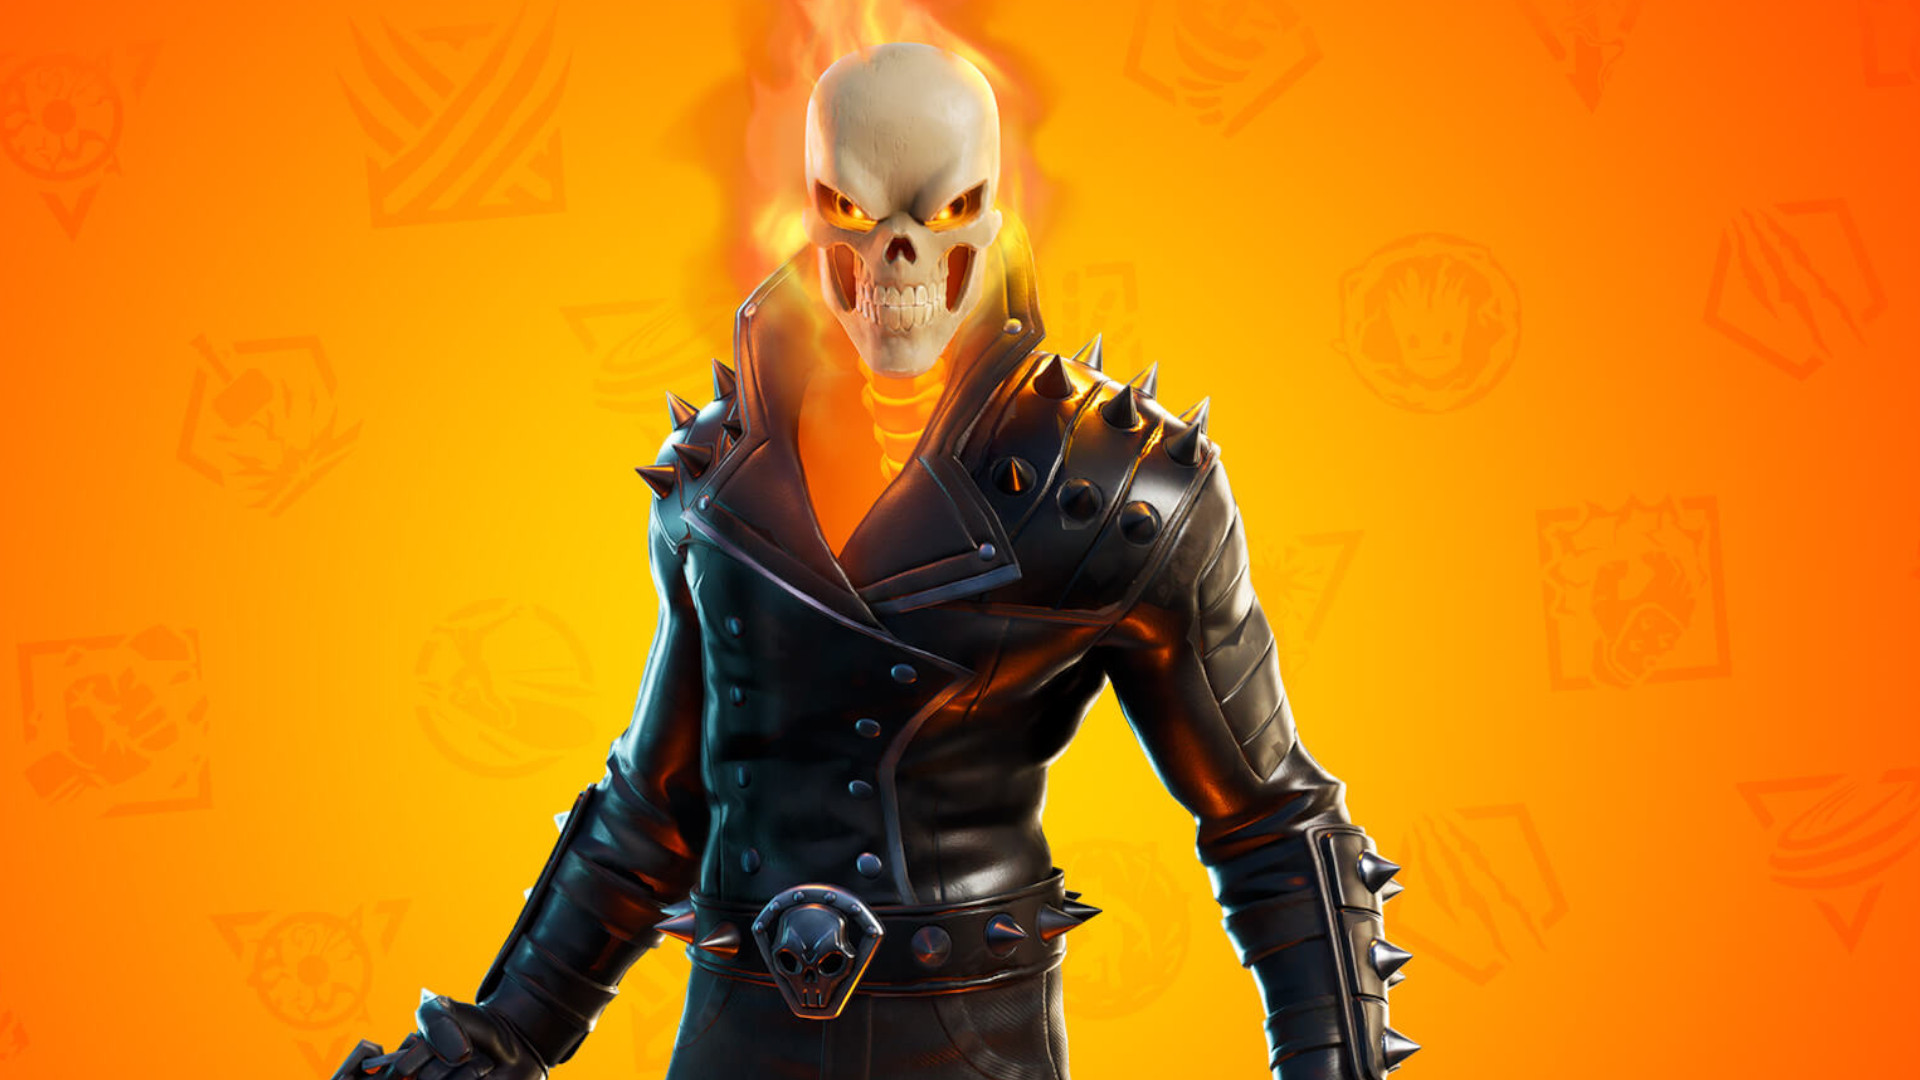 monthly fortnite subscriptions might be on the way pcgamesn monthly fortnite subscriptions might be